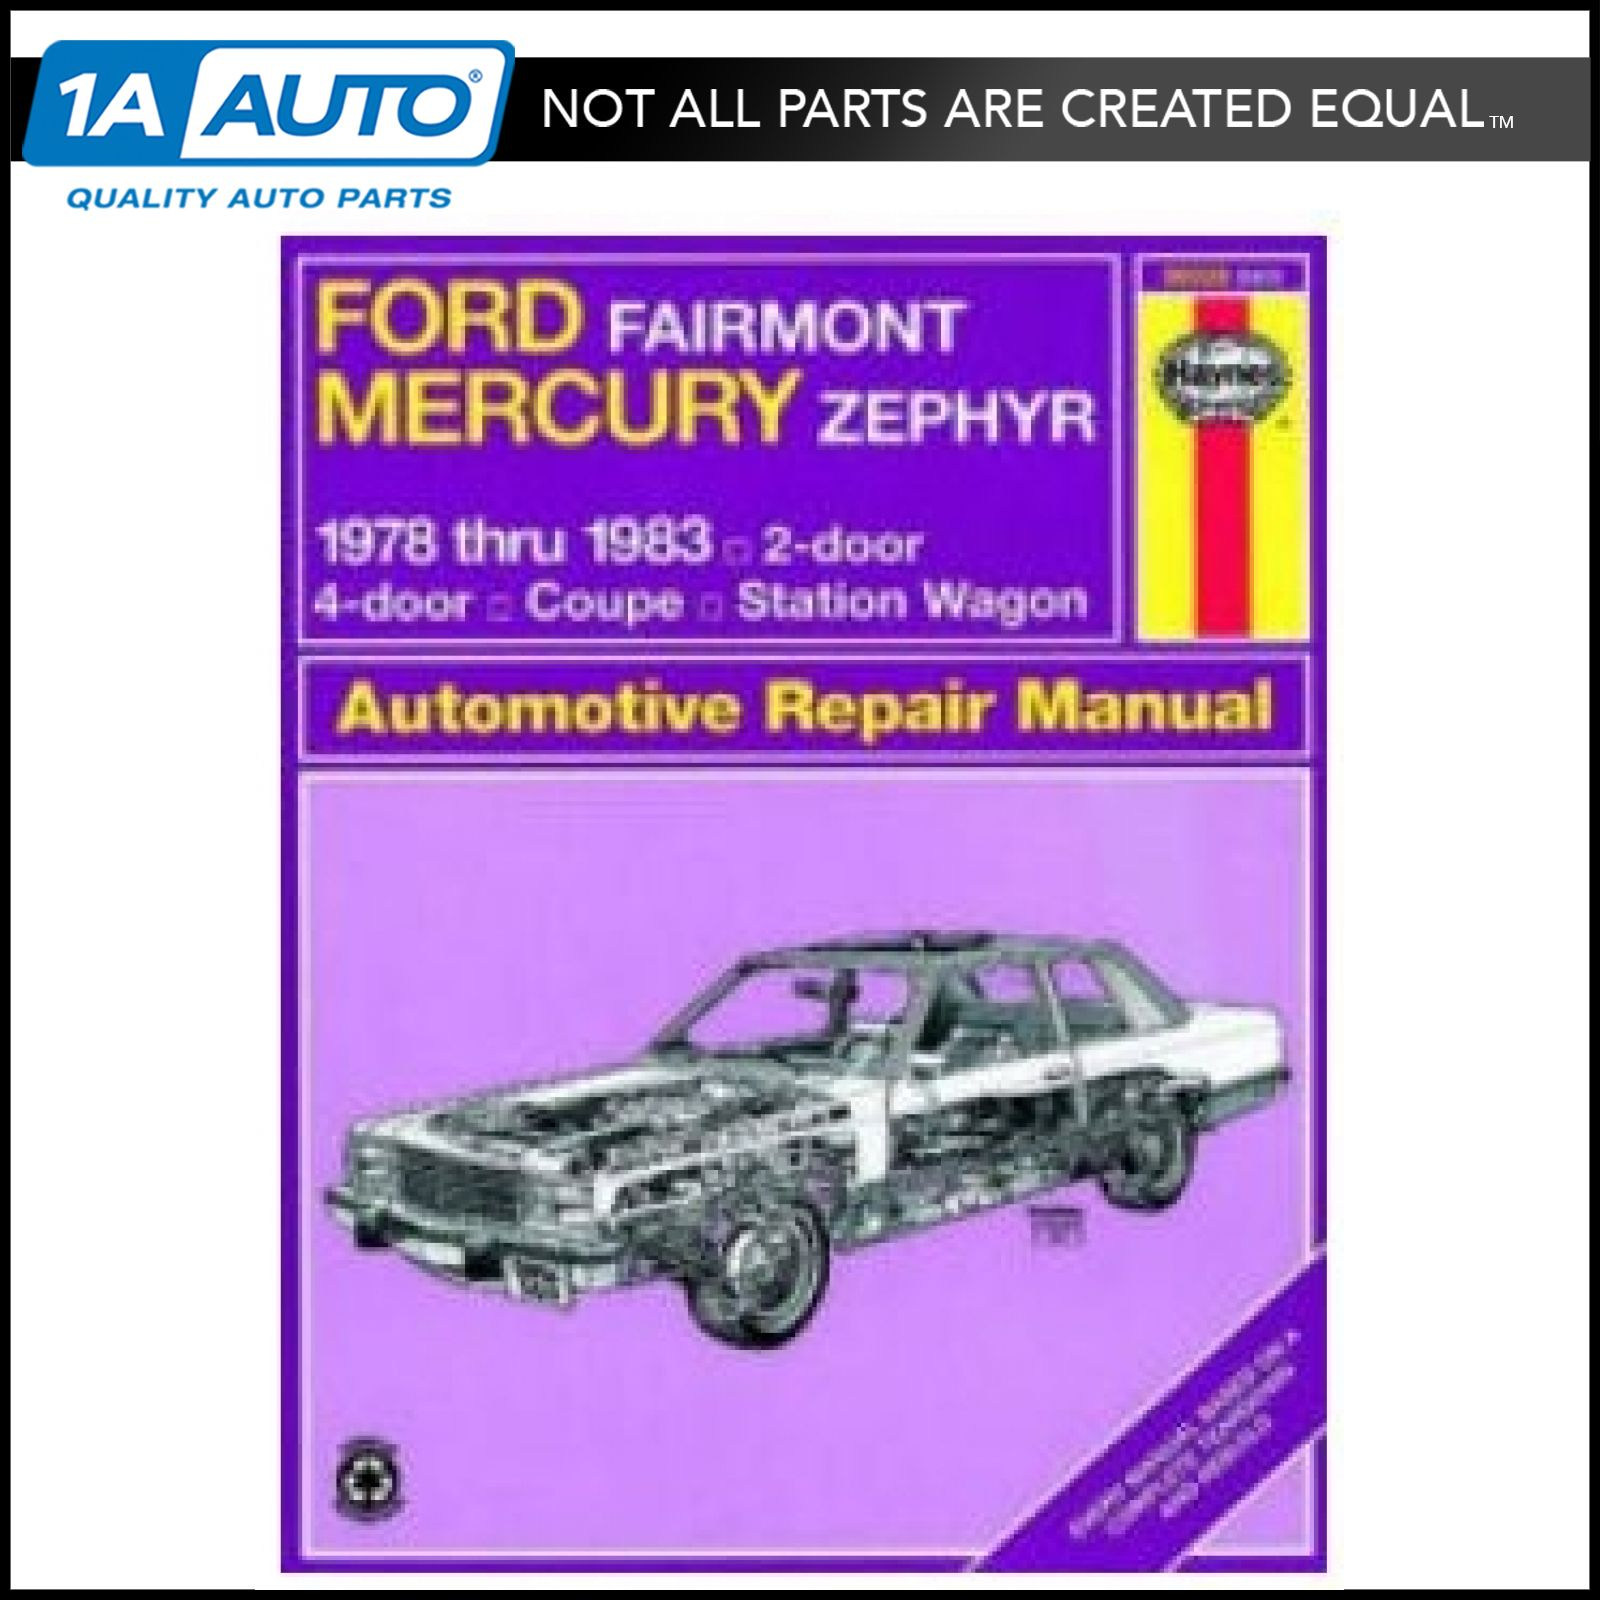 Haynes Repair Manual For 78 83 Mercury Zephyr Ford Fairmont Ebay 1941 4 Door Sedan 1978